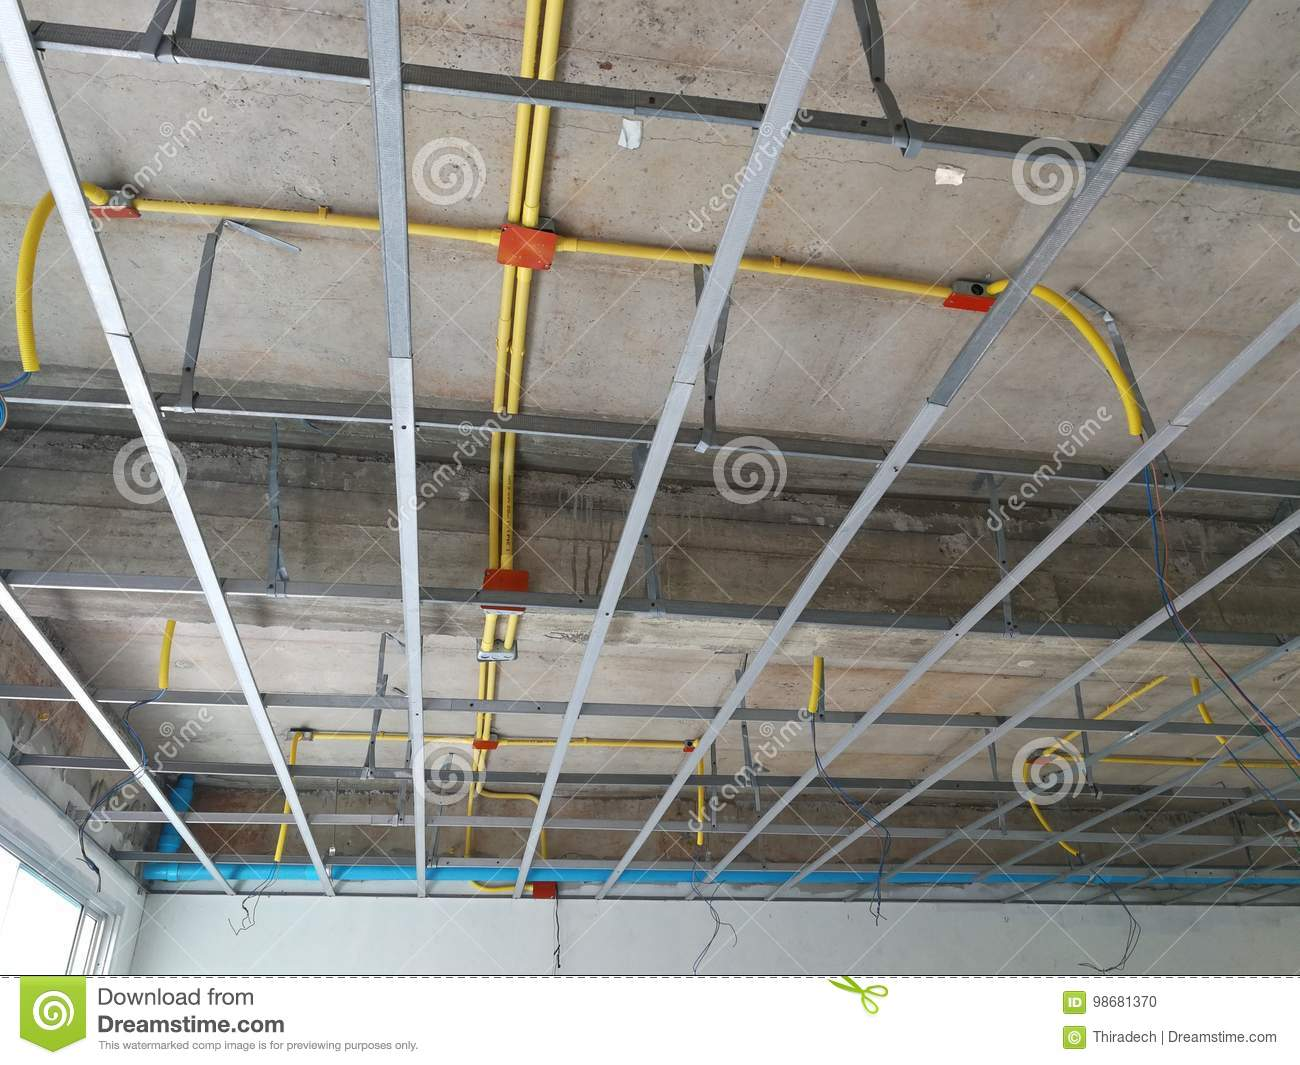 install the ceiling frame and wiring pipe stock photo wiring steel frame house wiring steel frame house wiring steel frame house wiring steel frame house